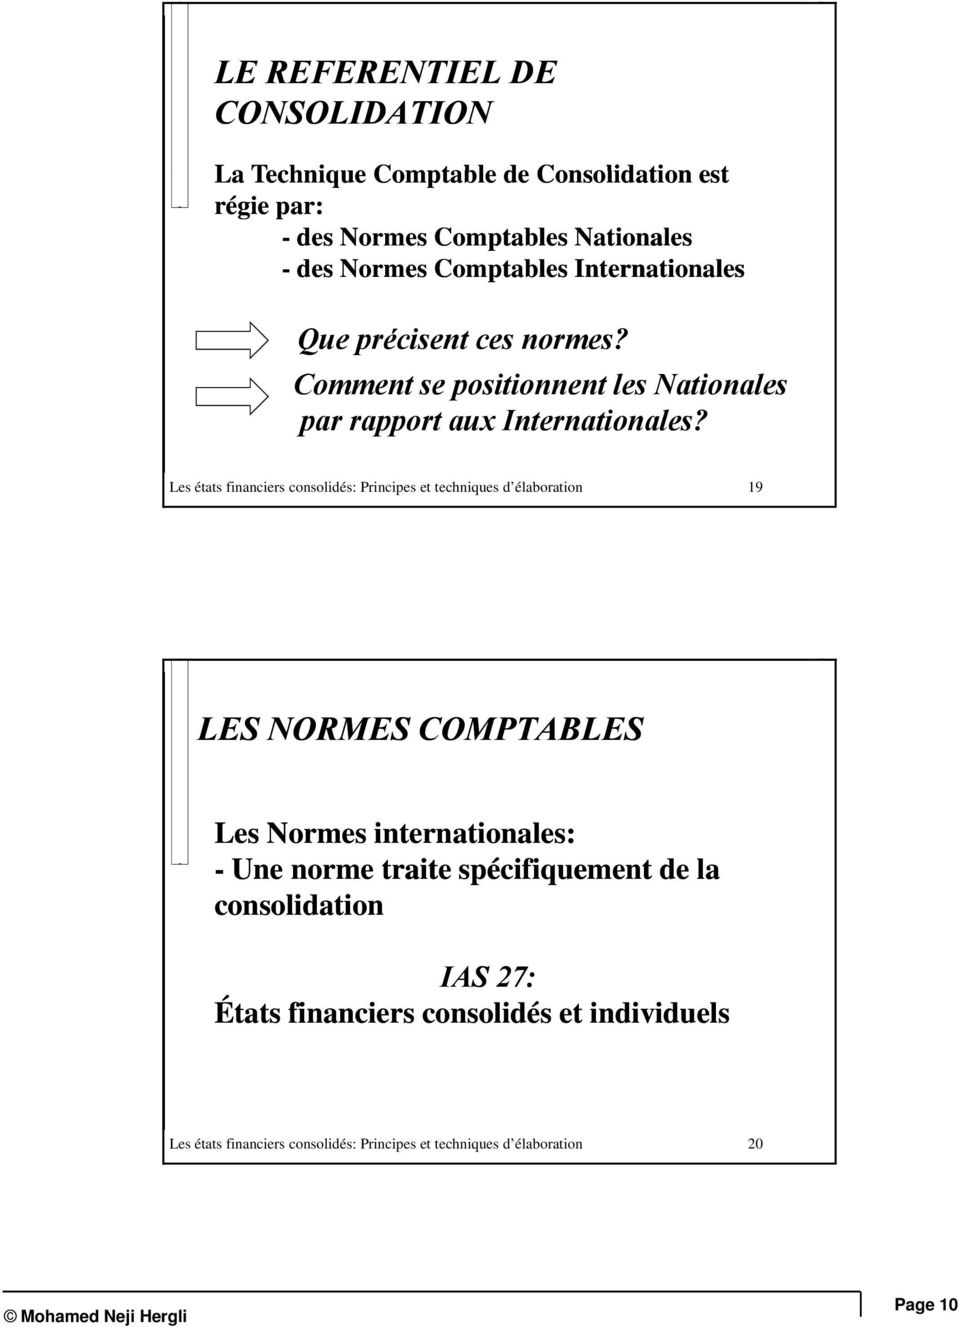 Comment se positionnent les Nationales par rapport aux Internationales?